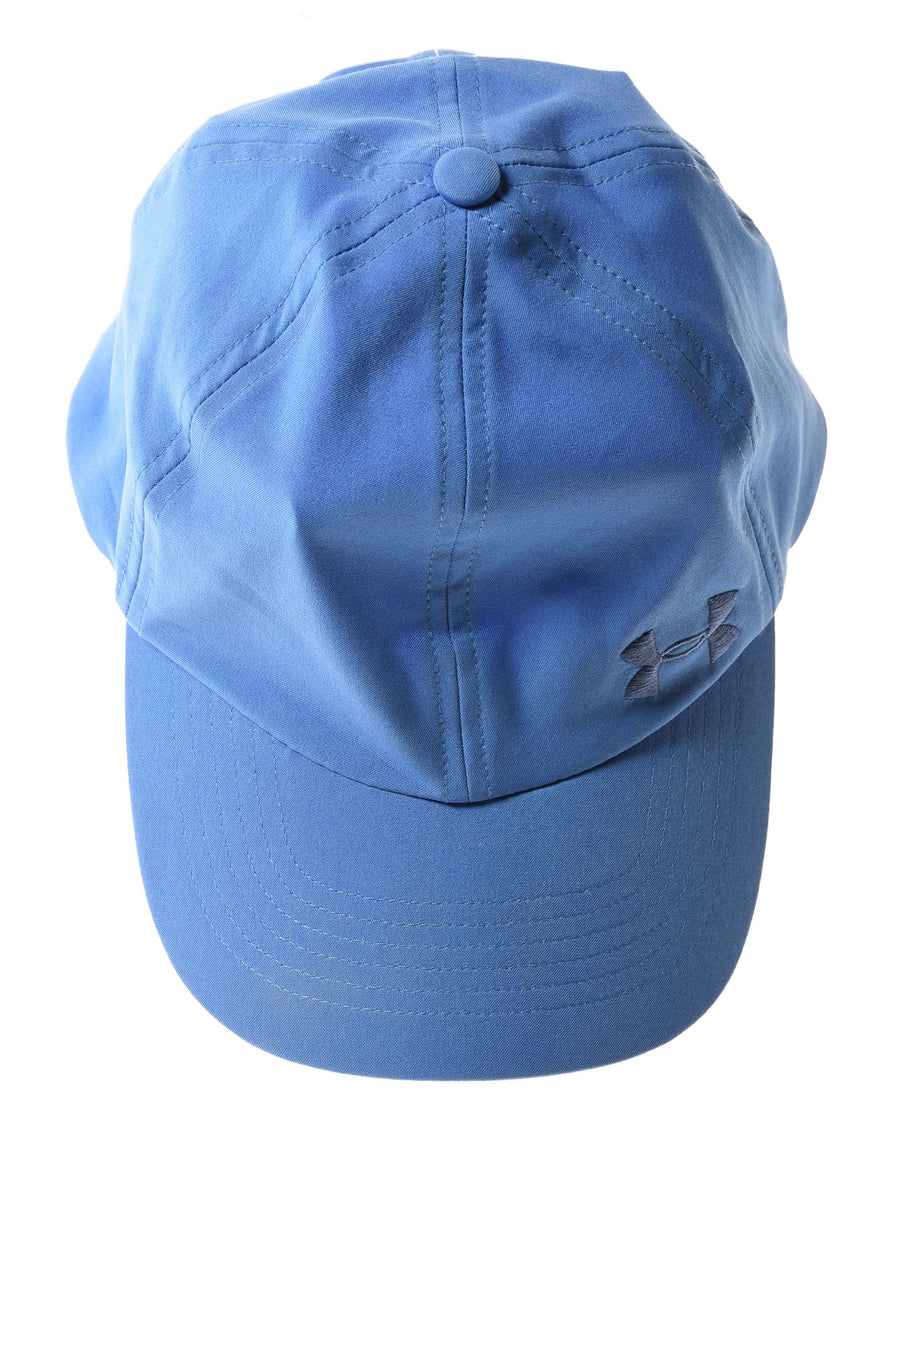 USED Under Armour Women's Hat One Size Blue